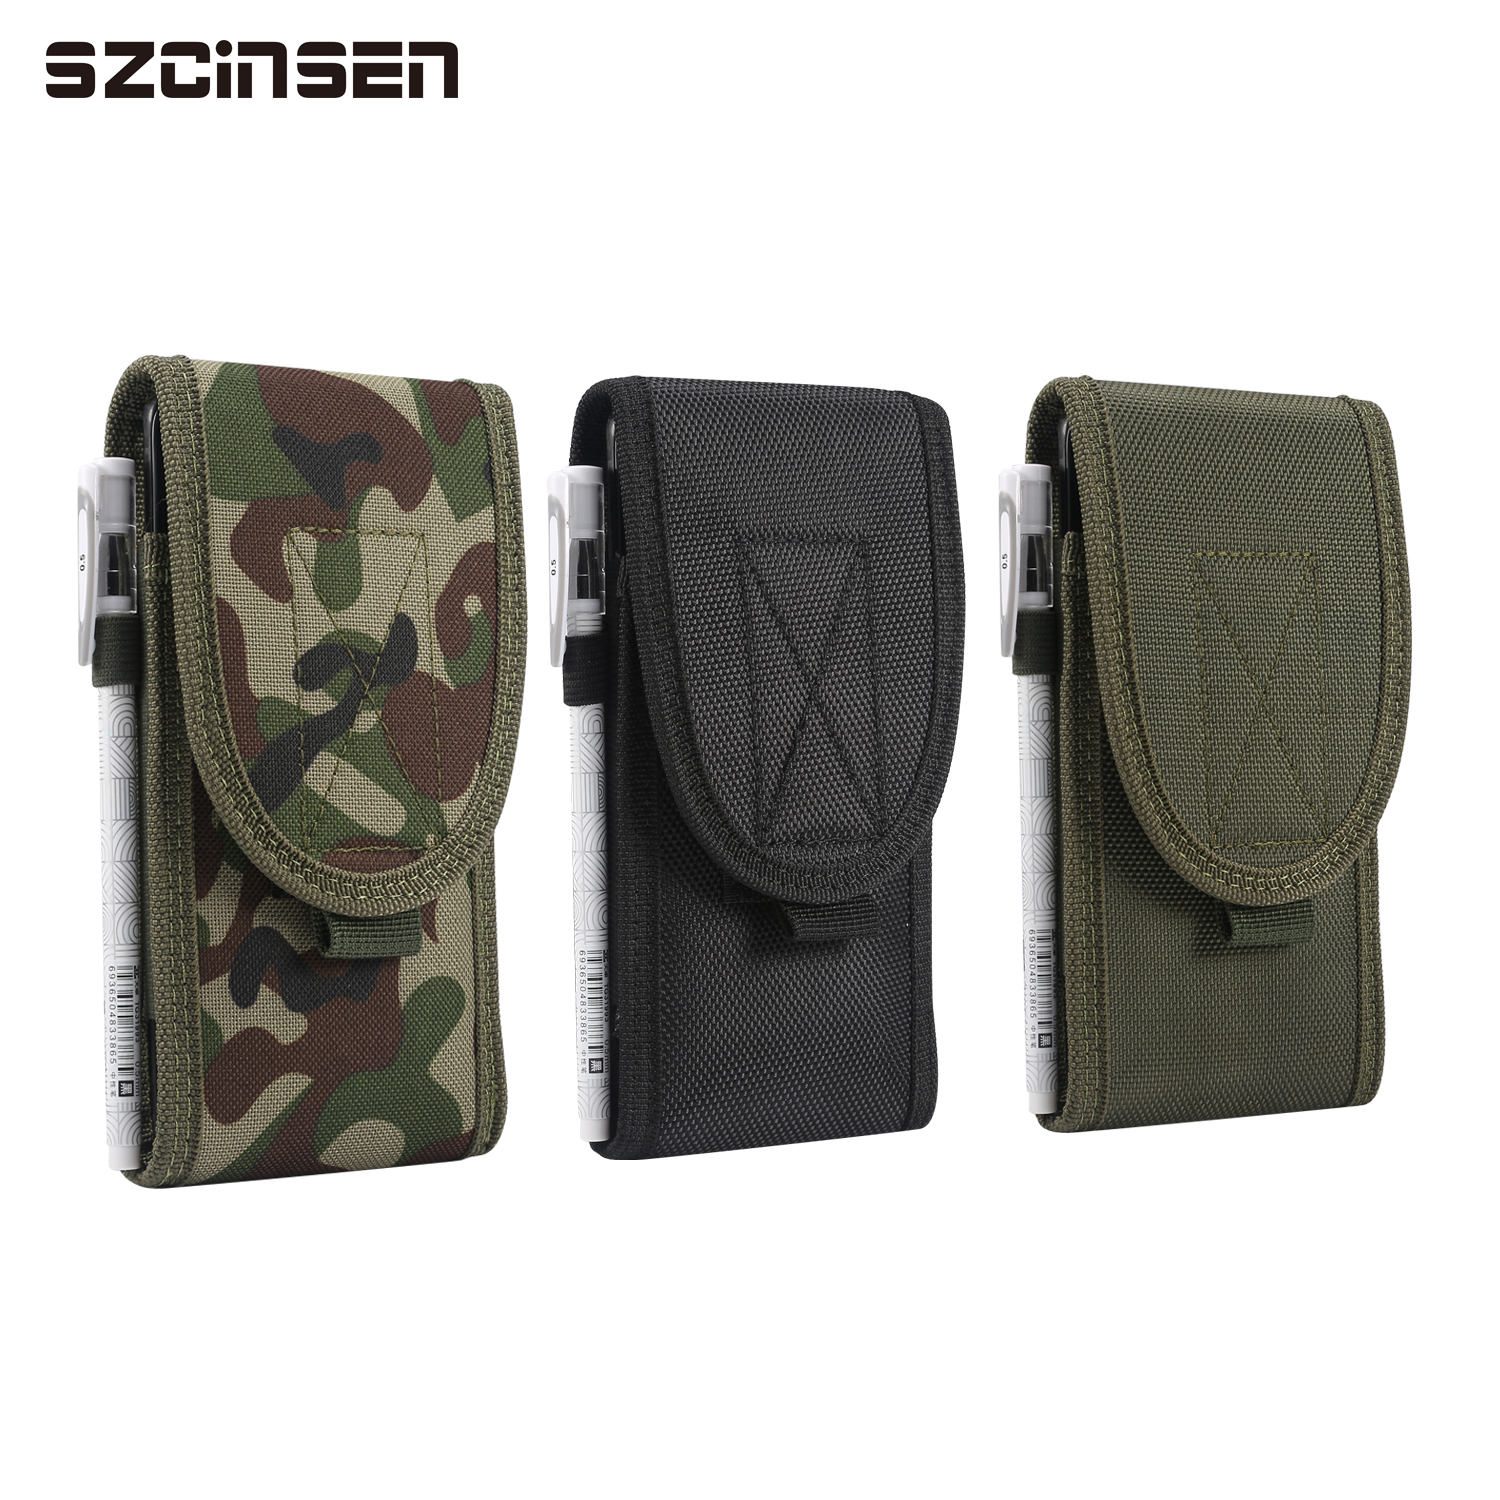 Universal 4.7-6.7 inch Tactical MOLLE Holster for <font><b>iphone</b></font> x <font><b>xr</b></font> 11 pro max Samsung Mobile Phone <font><b>Belt</b></font> Clip Pouch Holster Cover <font><b>Case</b></font> image